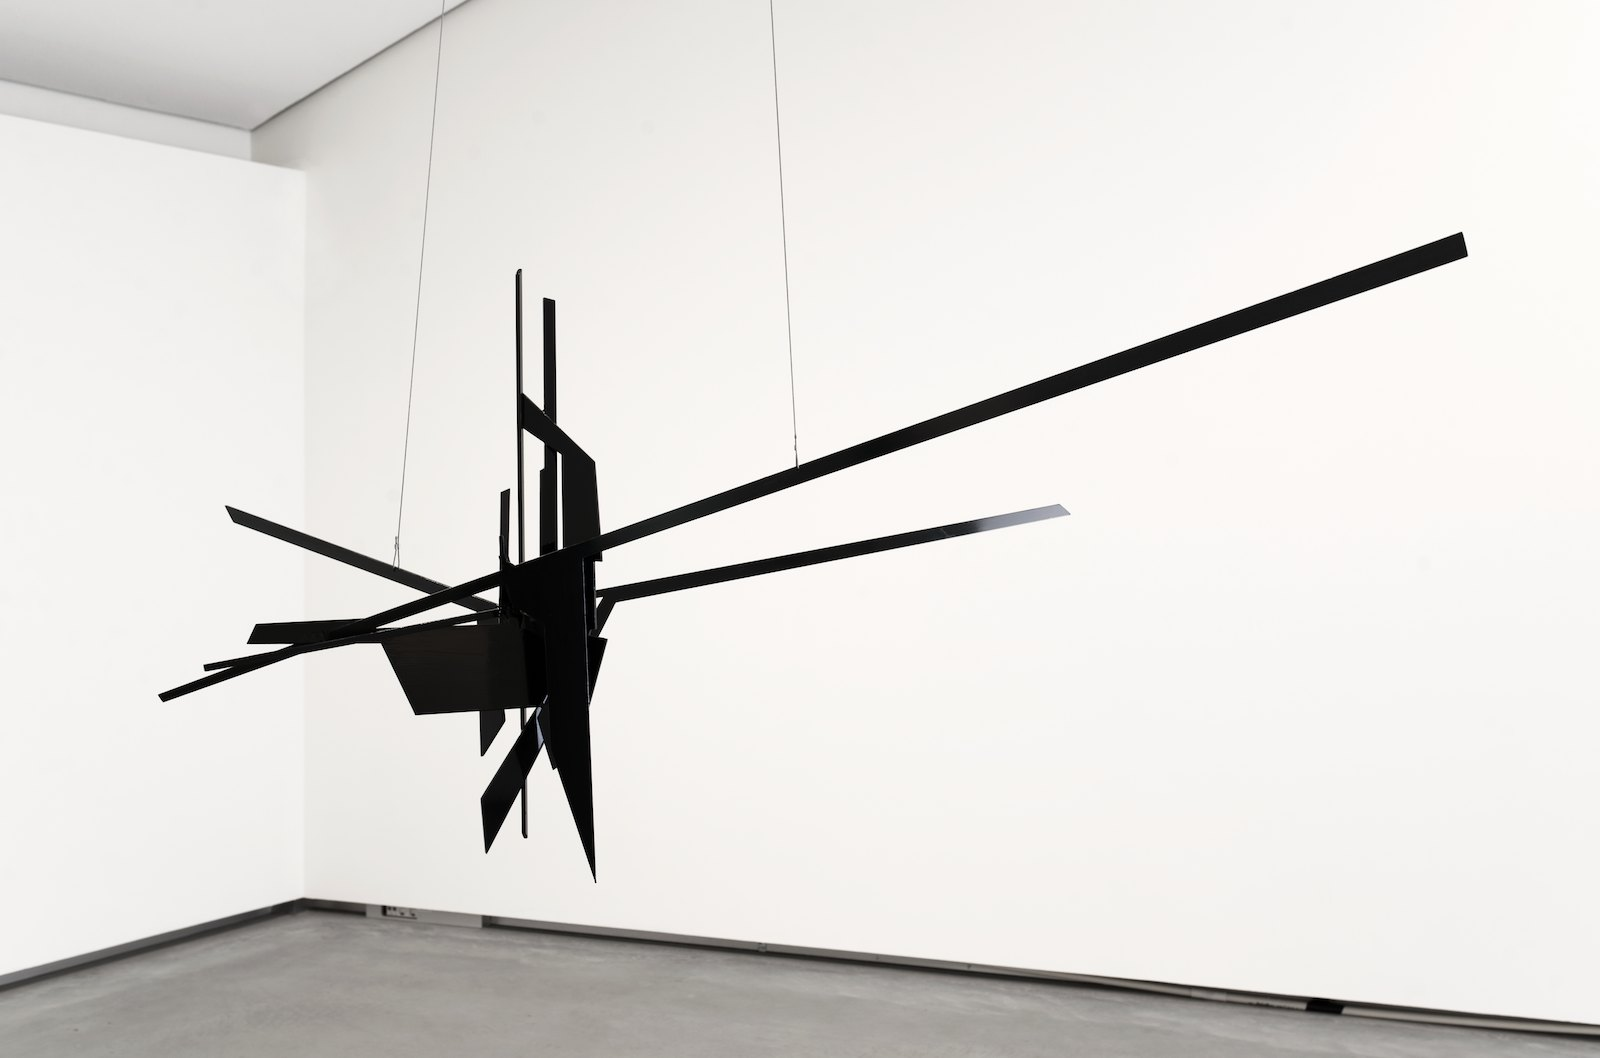 Folded Perspective, 2015. Steel and oil paint, 72 x 170 x 62 cm. Installation view NN-A, NN-A, NN-A, Ny Norsk Abstraksjon, Astrup Fearnley Museet, Oslo 2015